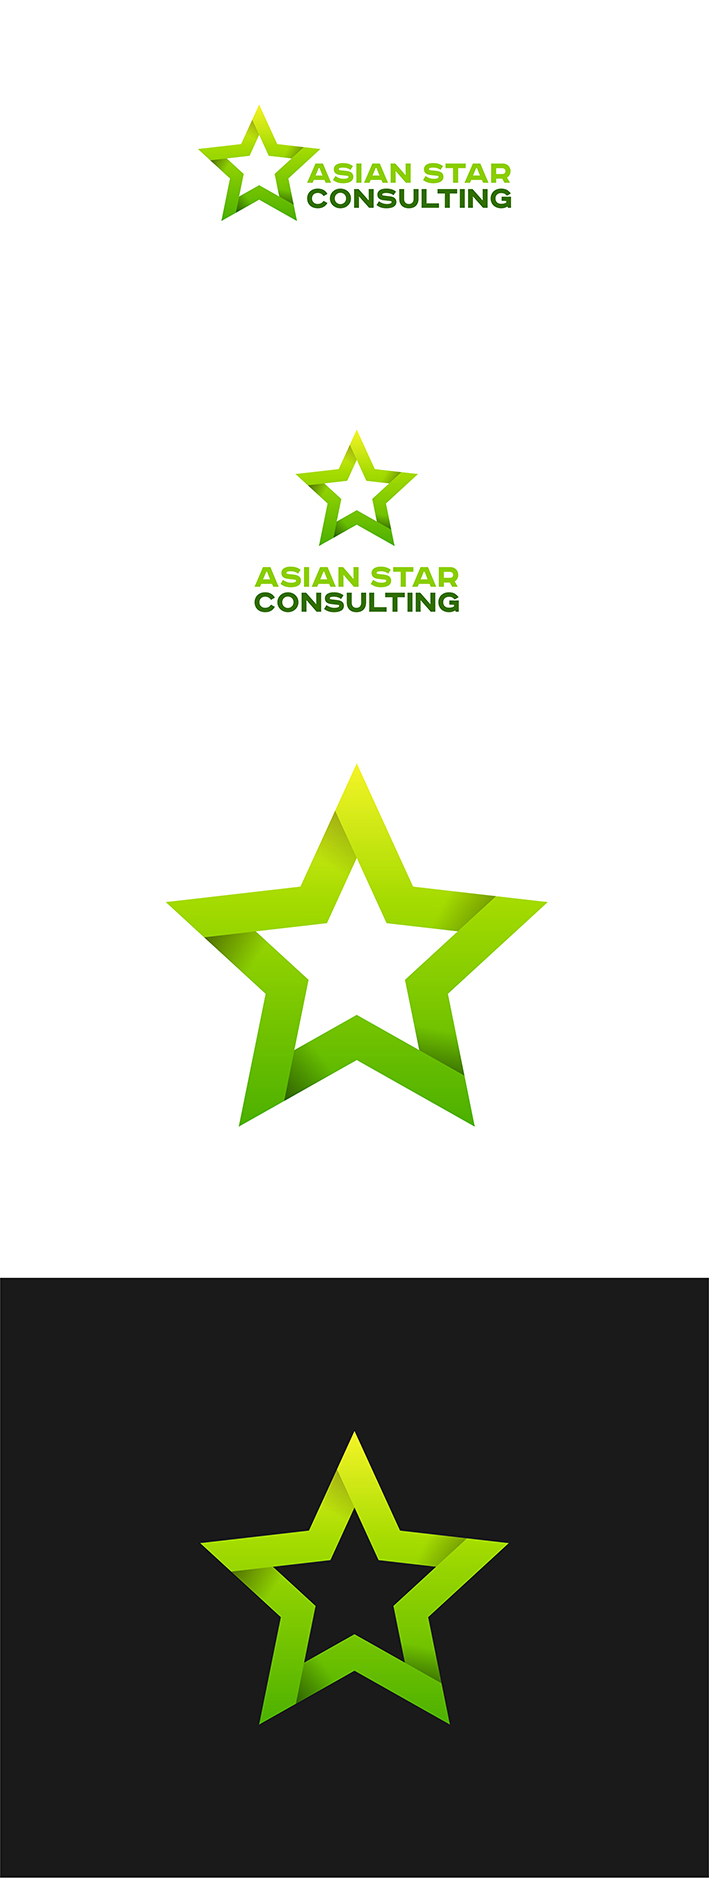 Asian Star Consulting